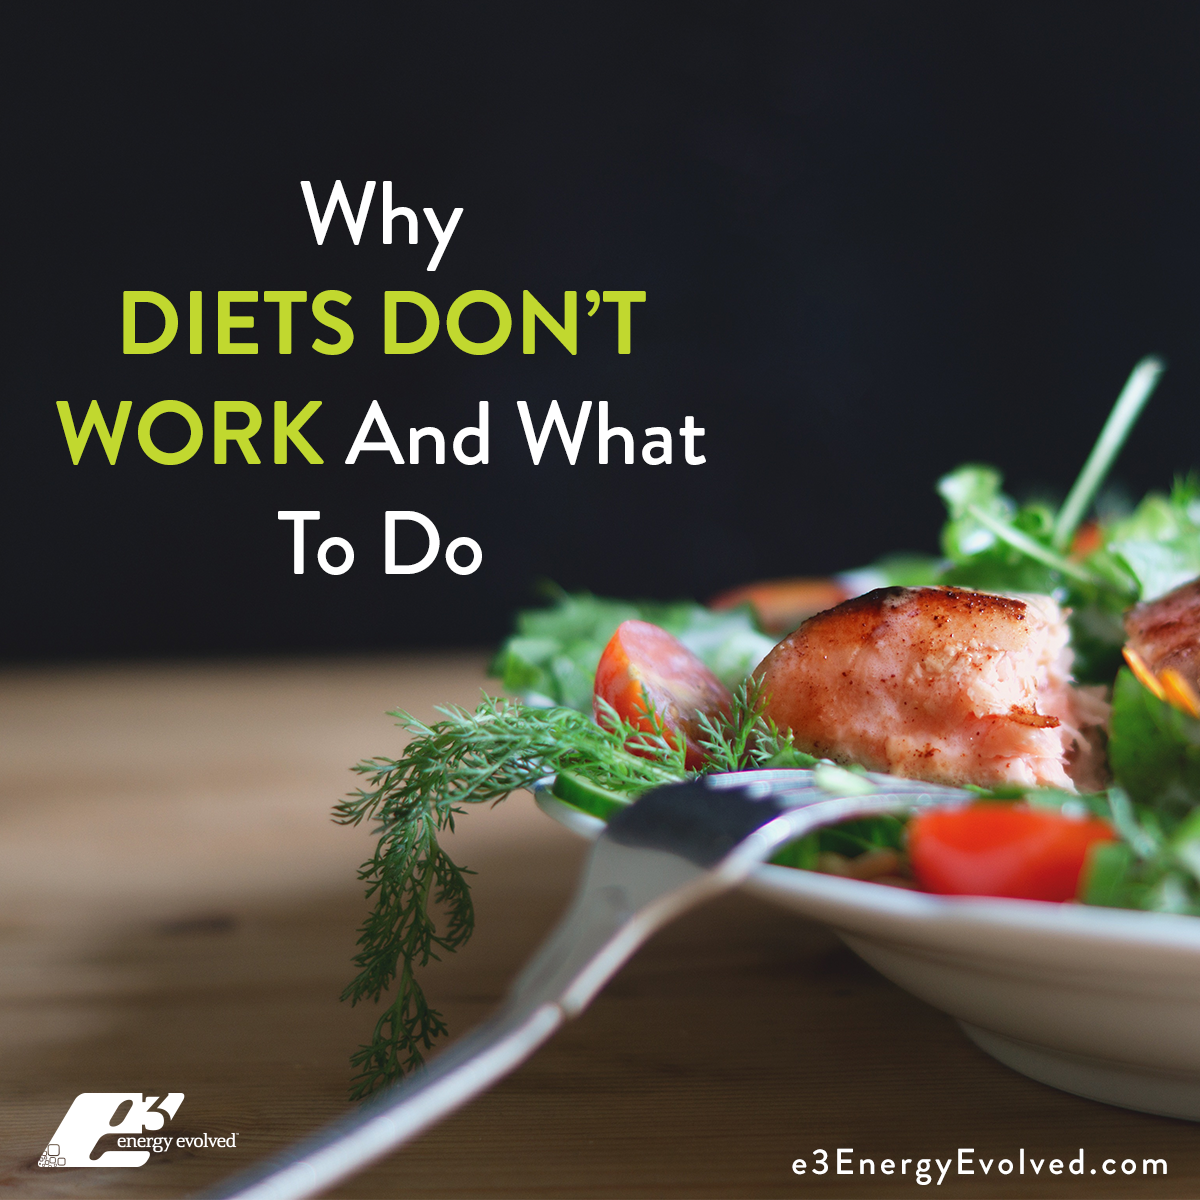 diets, diet, nutrition, weight loss, metabolism, weight loss resistance